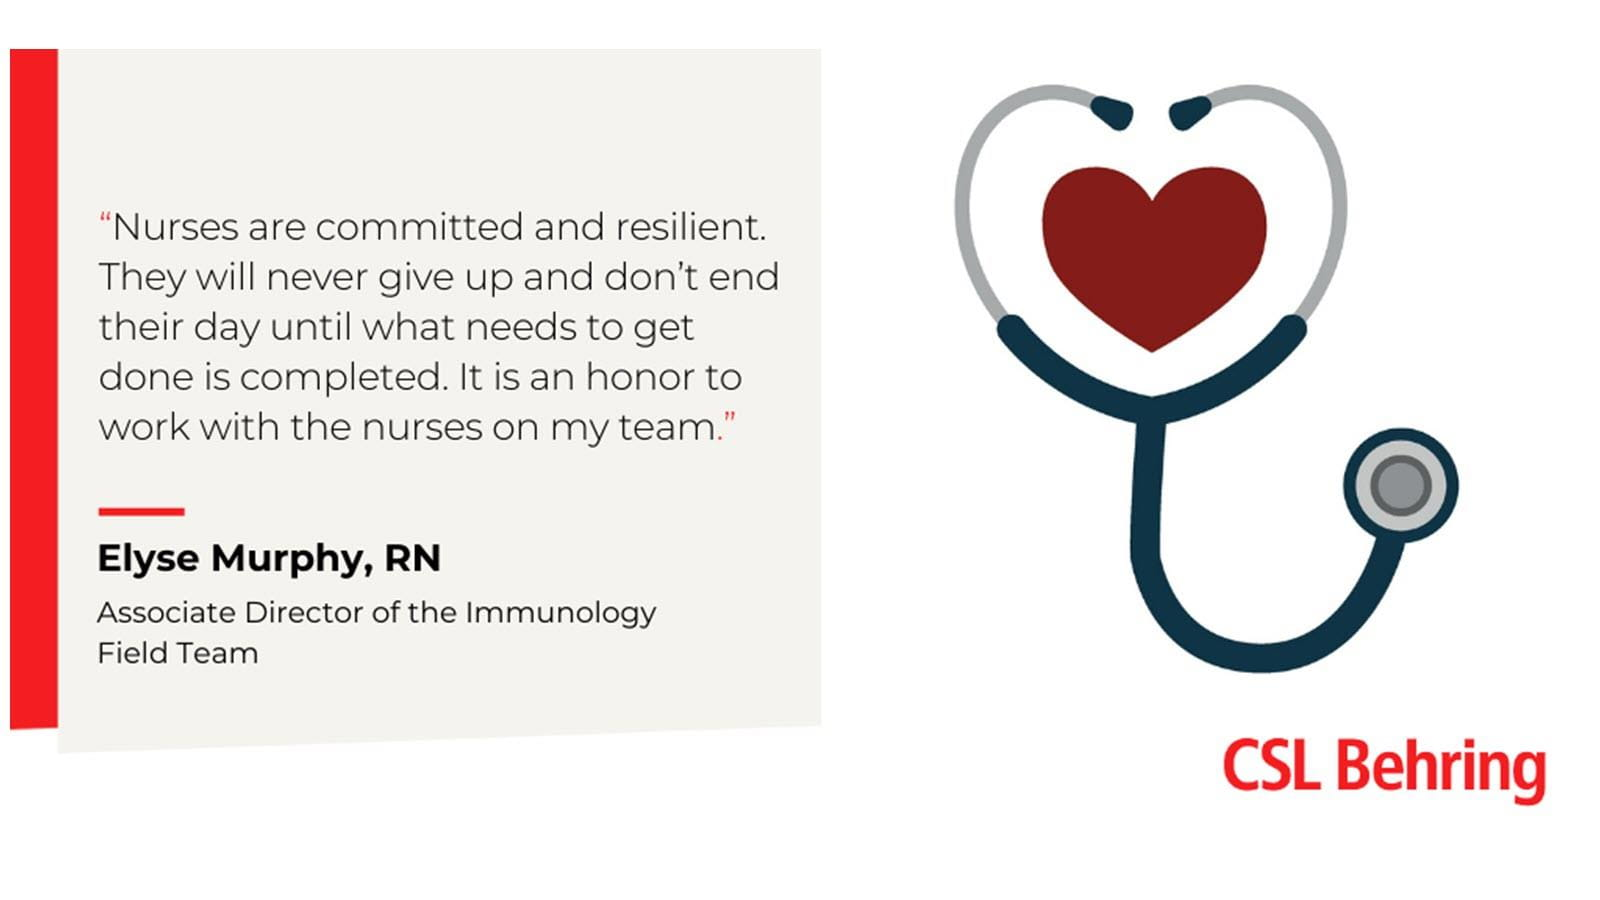 Nurses are committed and resilient quote.